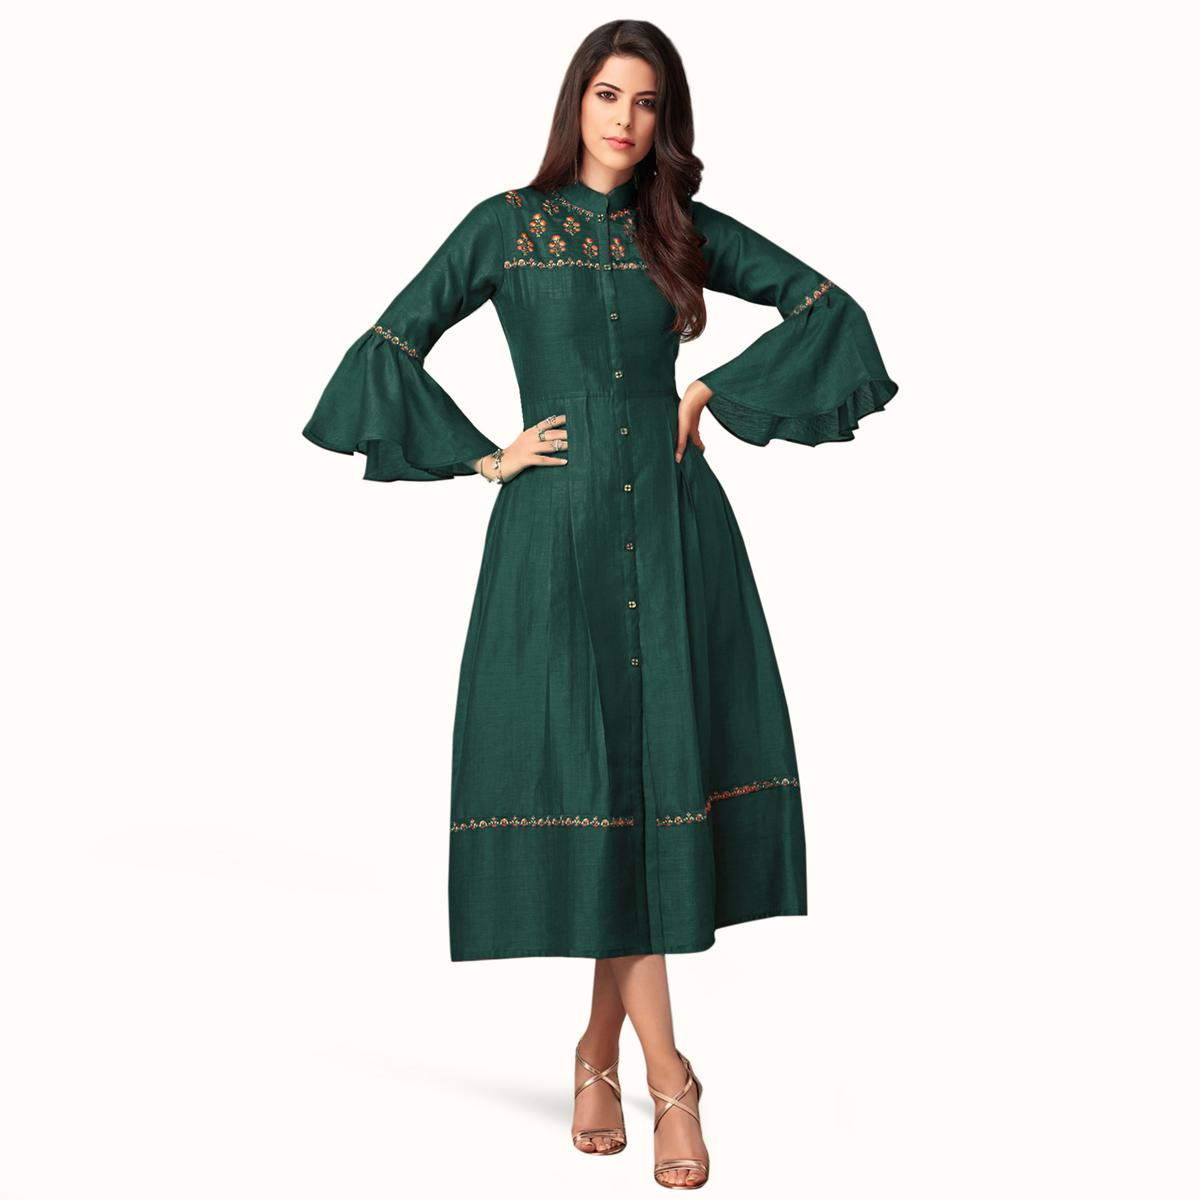 Majesty Dark Ocean Green Colored Partywear Embroidered Bell Sleeves Cotton Kurti